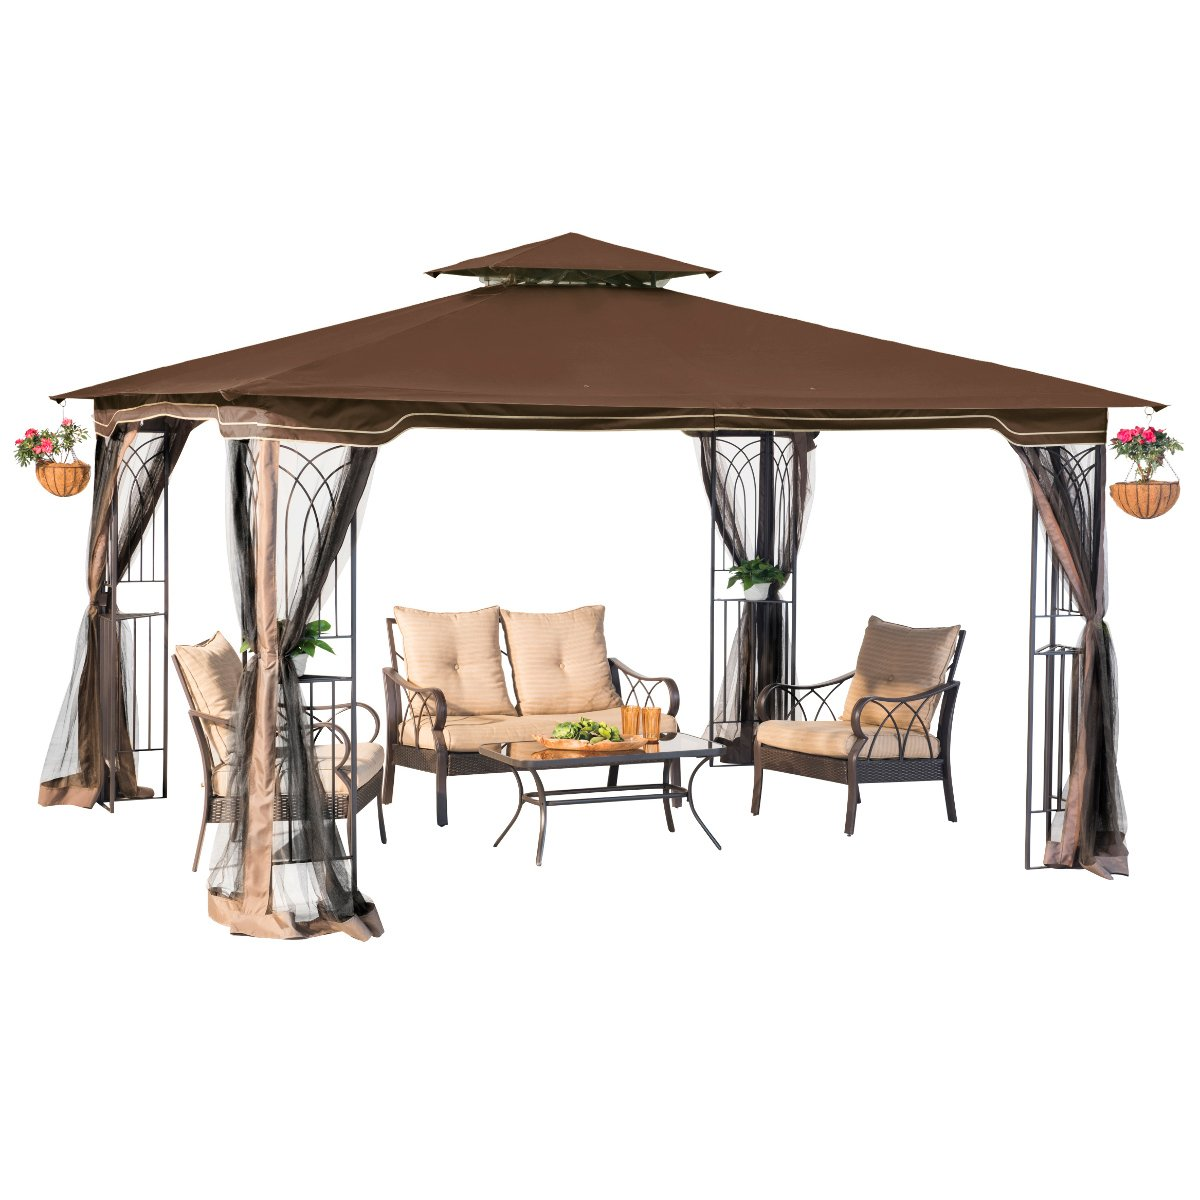 10 x 12 Regency II Patio Gazebo with Mosquito Netting by sunjoy